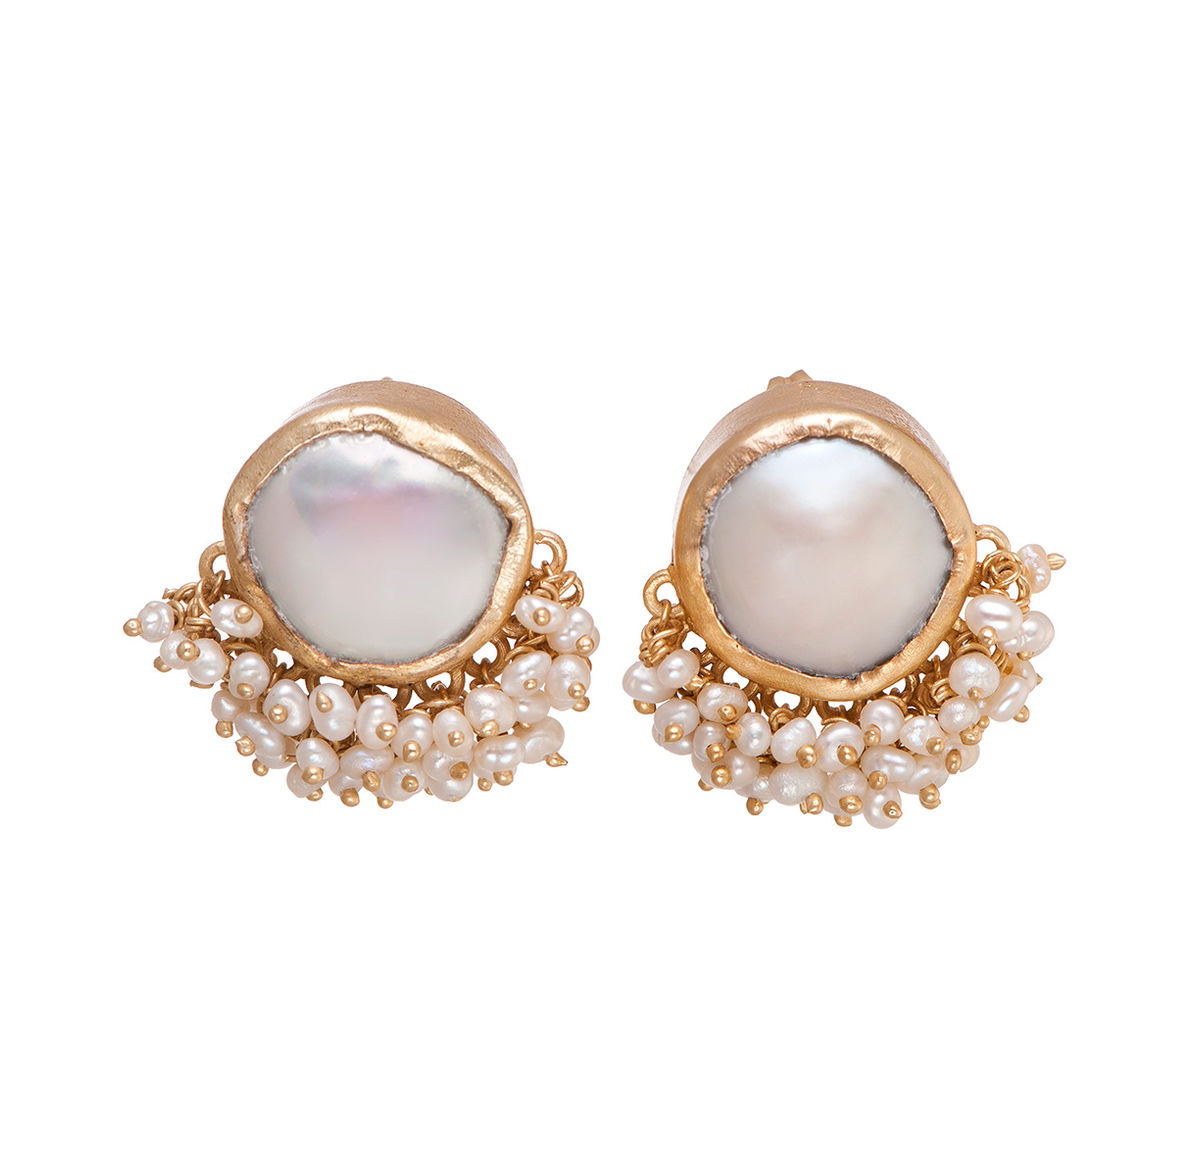 drop boroque large archives baroque jewellery bg category roxluna stud earrings product pearl e